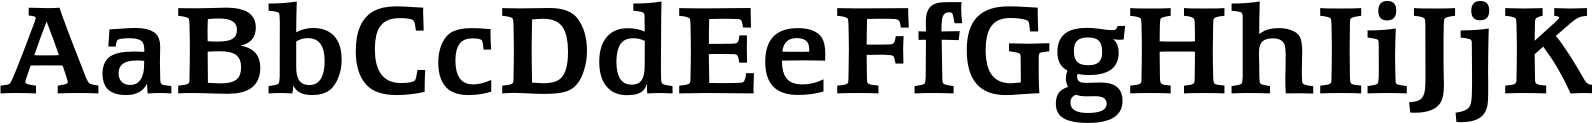 EquestrienneRR Medium Font